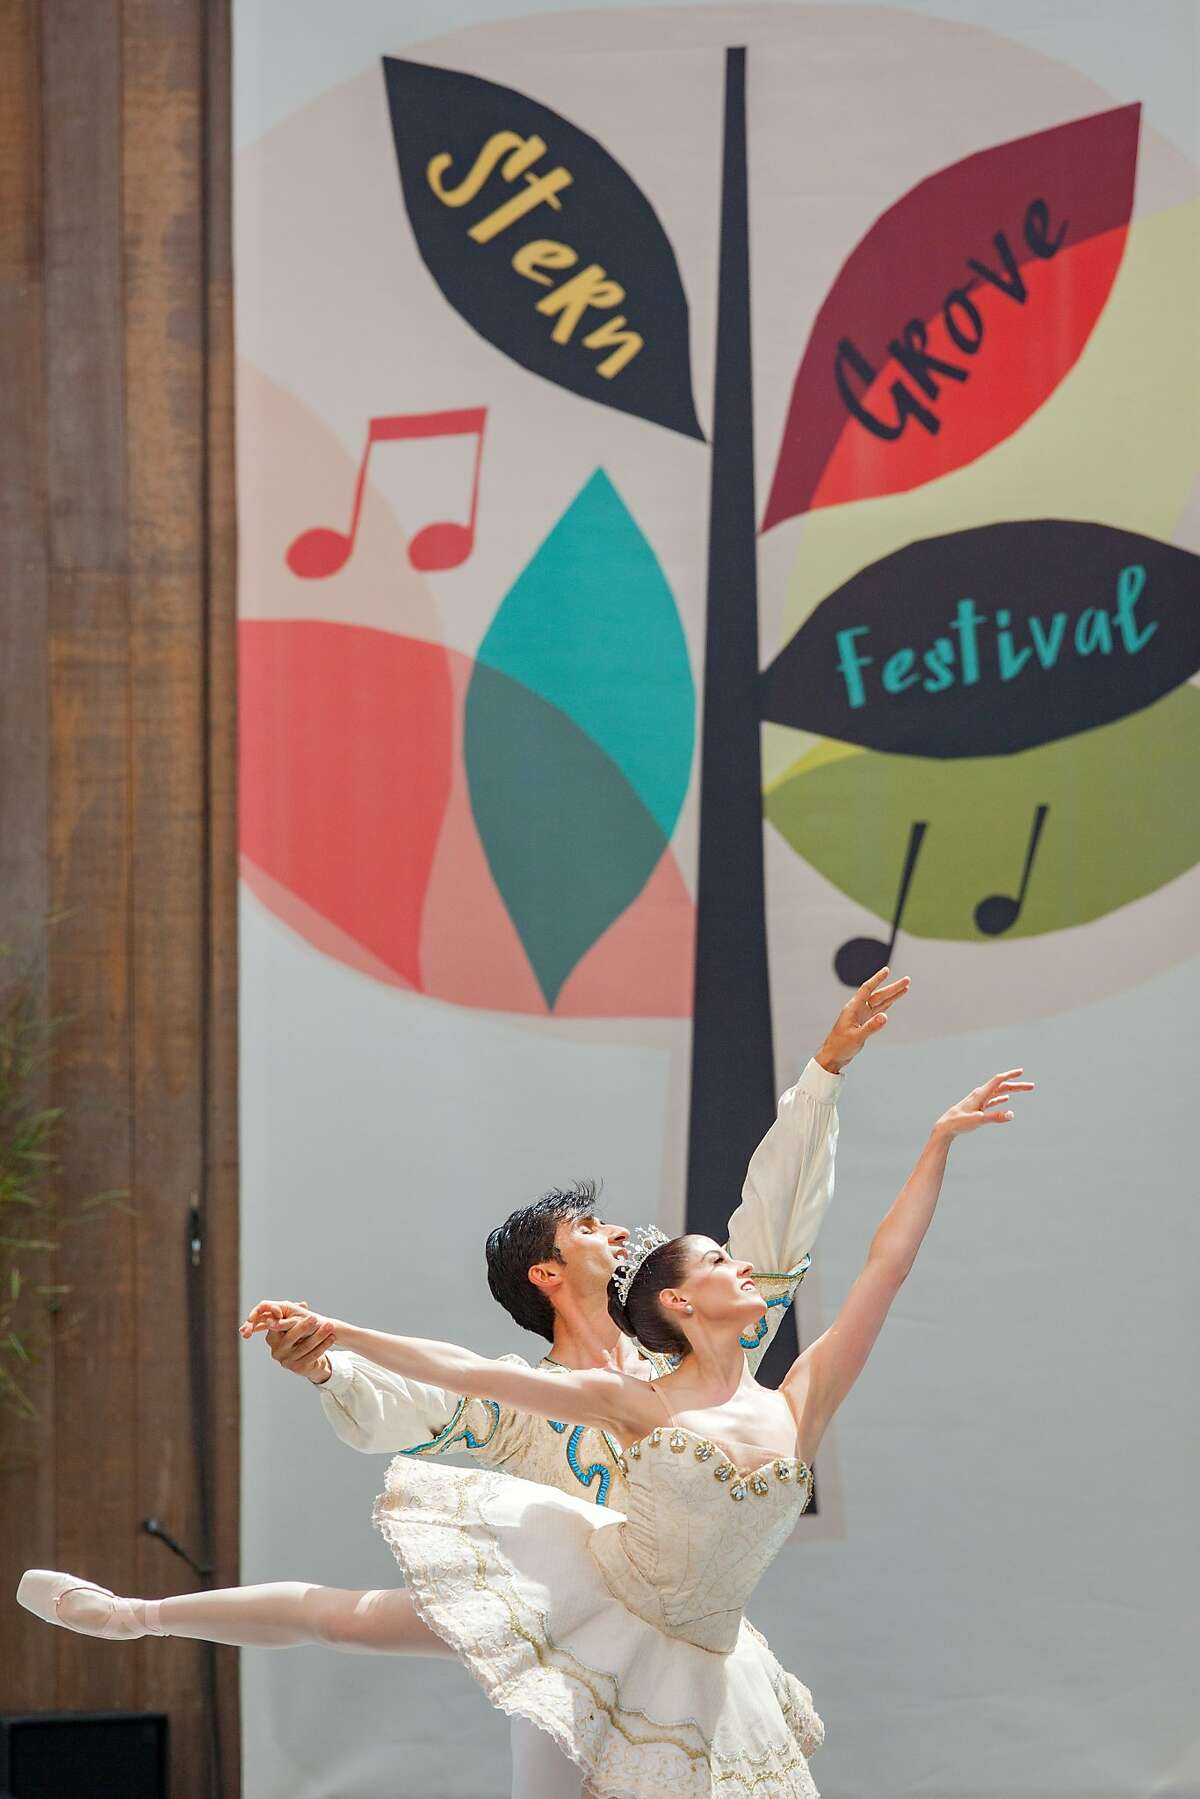 San Francisco Ballet performs during the Stern Grove Festival, Sunday, July 26, 2015, in San Francisco, Calif.